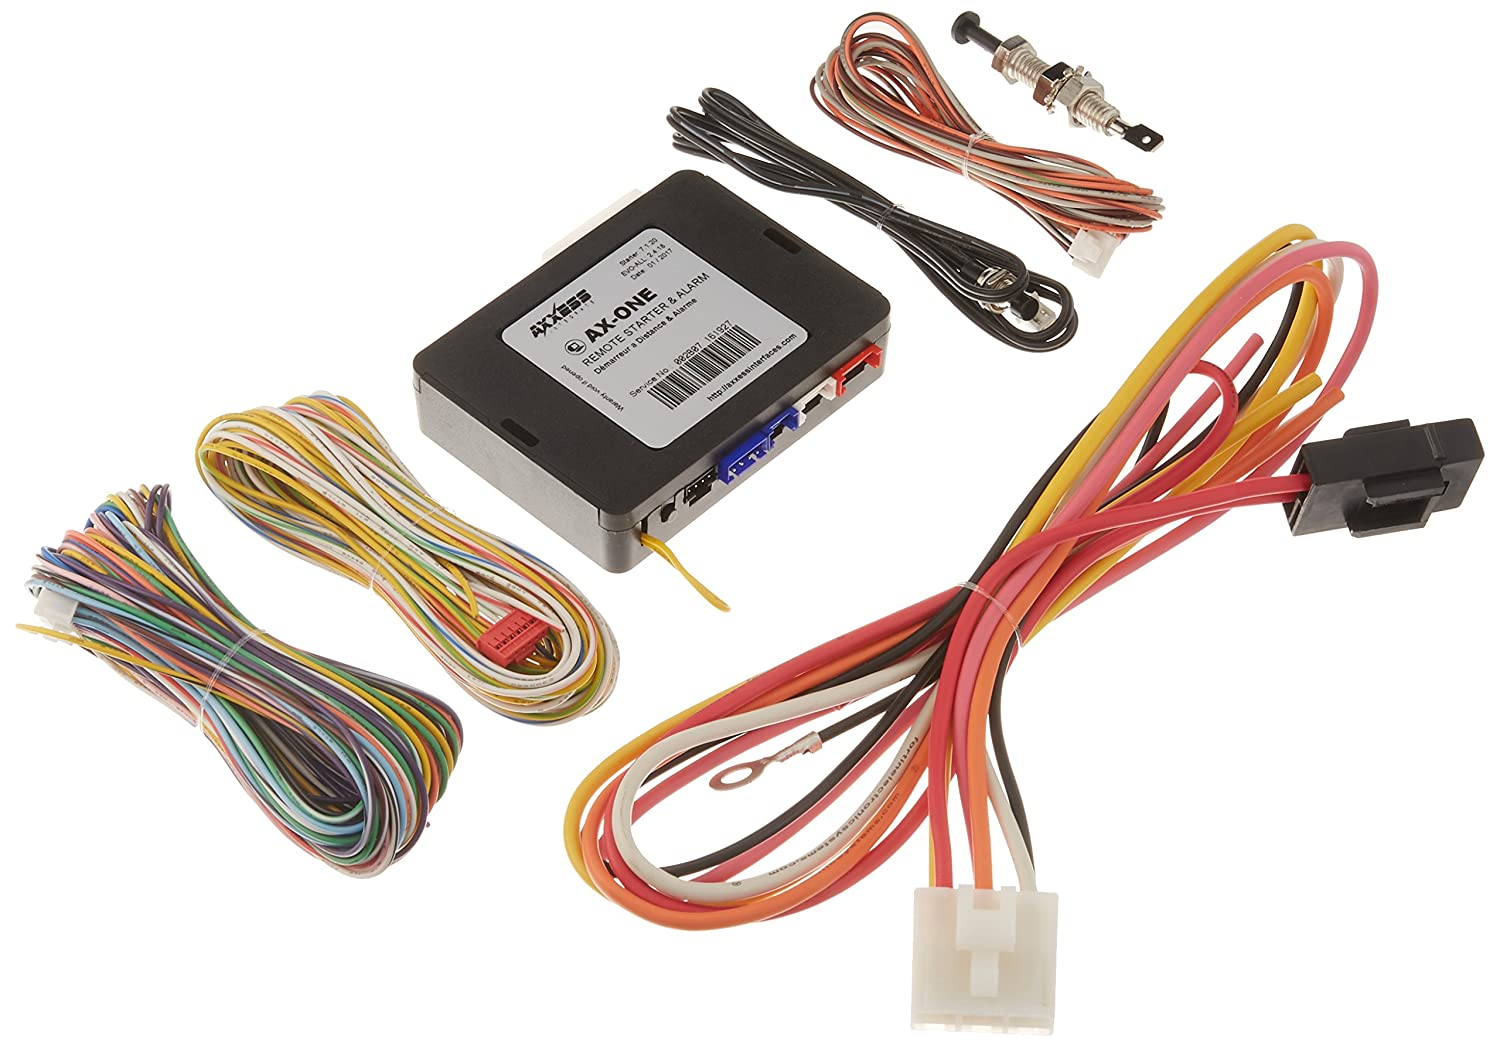 tl2250 remote start wiring harness   34 wiring diagram